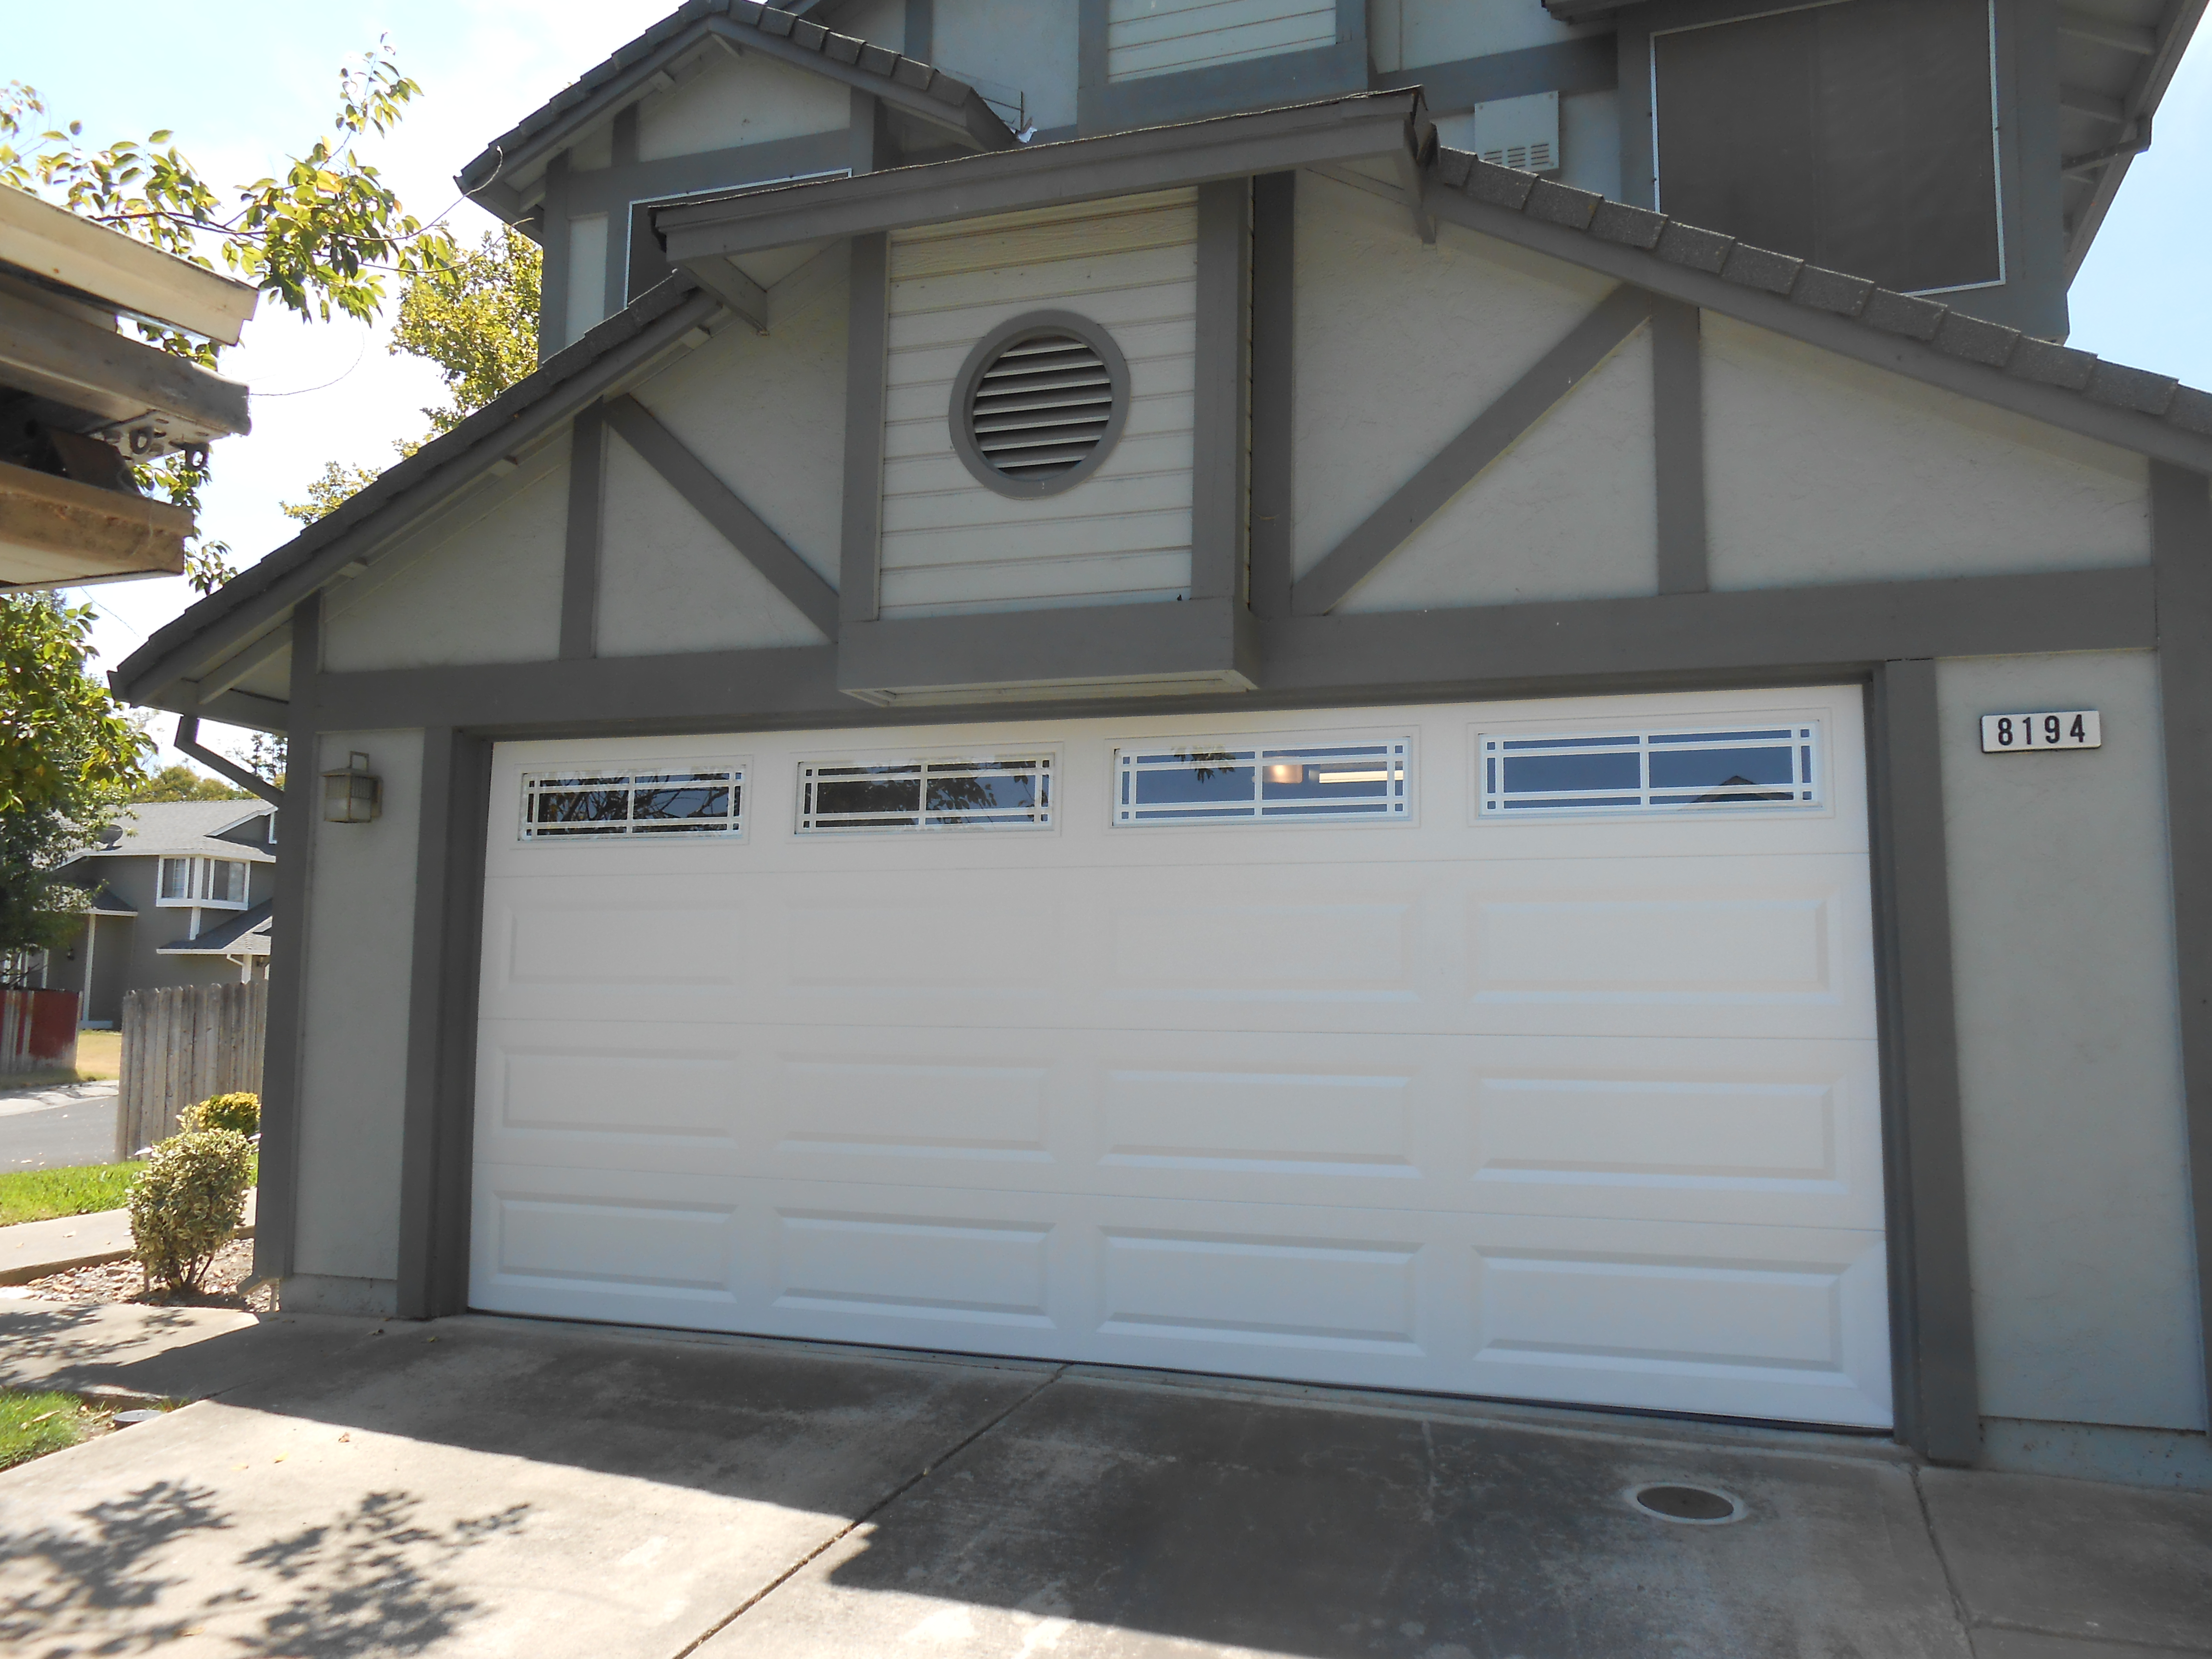 16 x 7 garage door167 Clopay Door With Windows  Garage Door Repair Service in